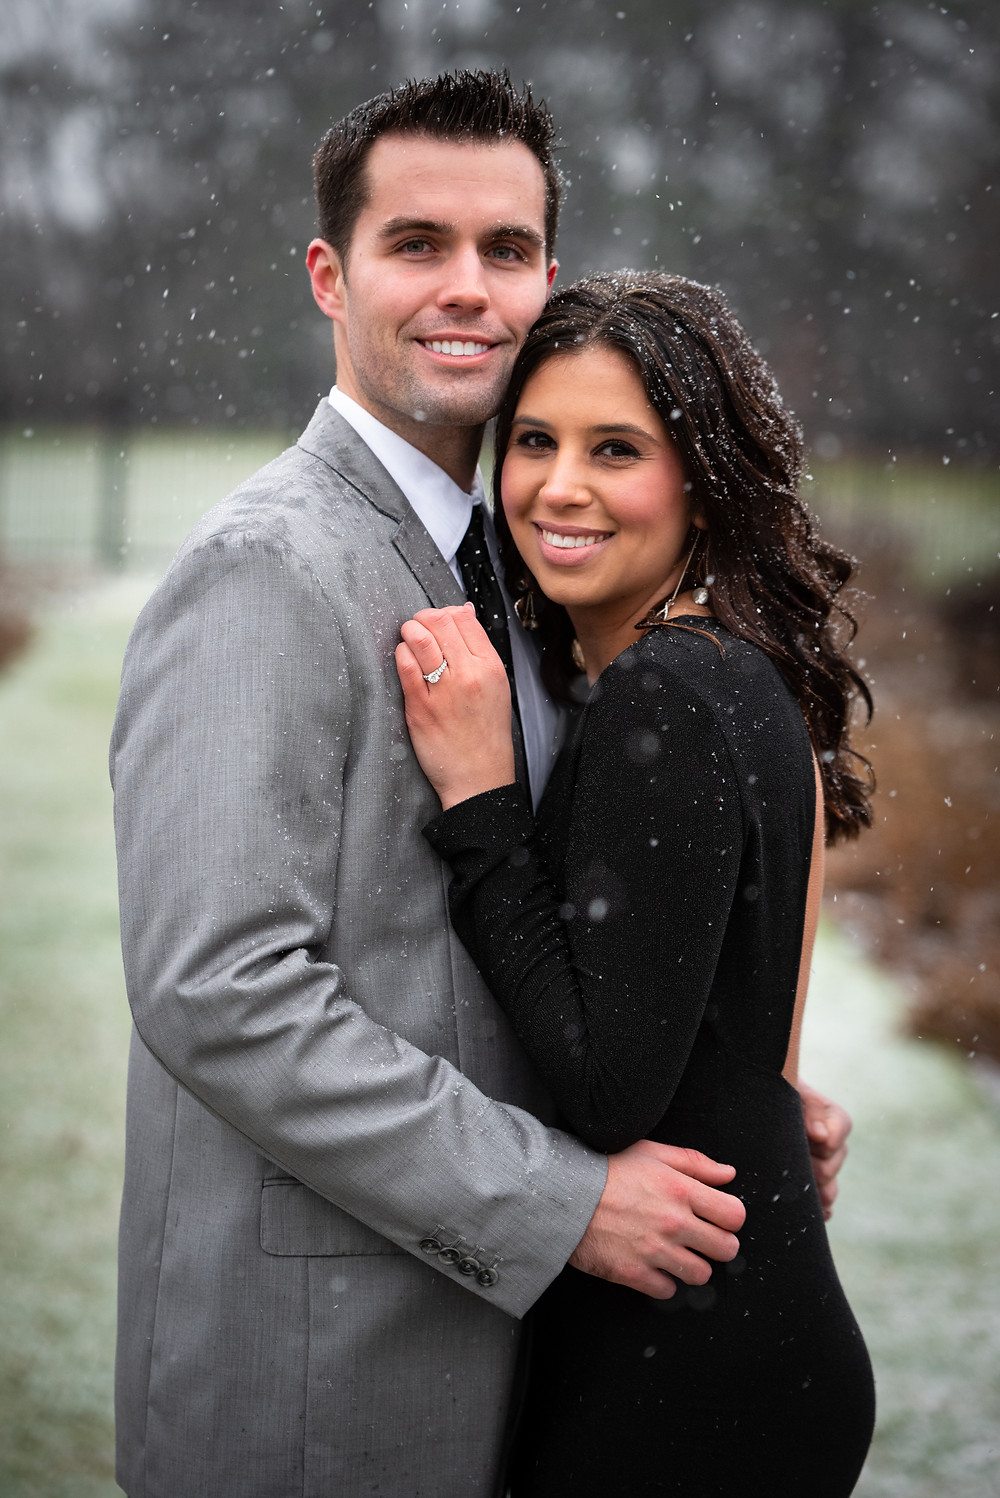 Couples portraits with girl wearing a black gown and guy wearing a gray suit